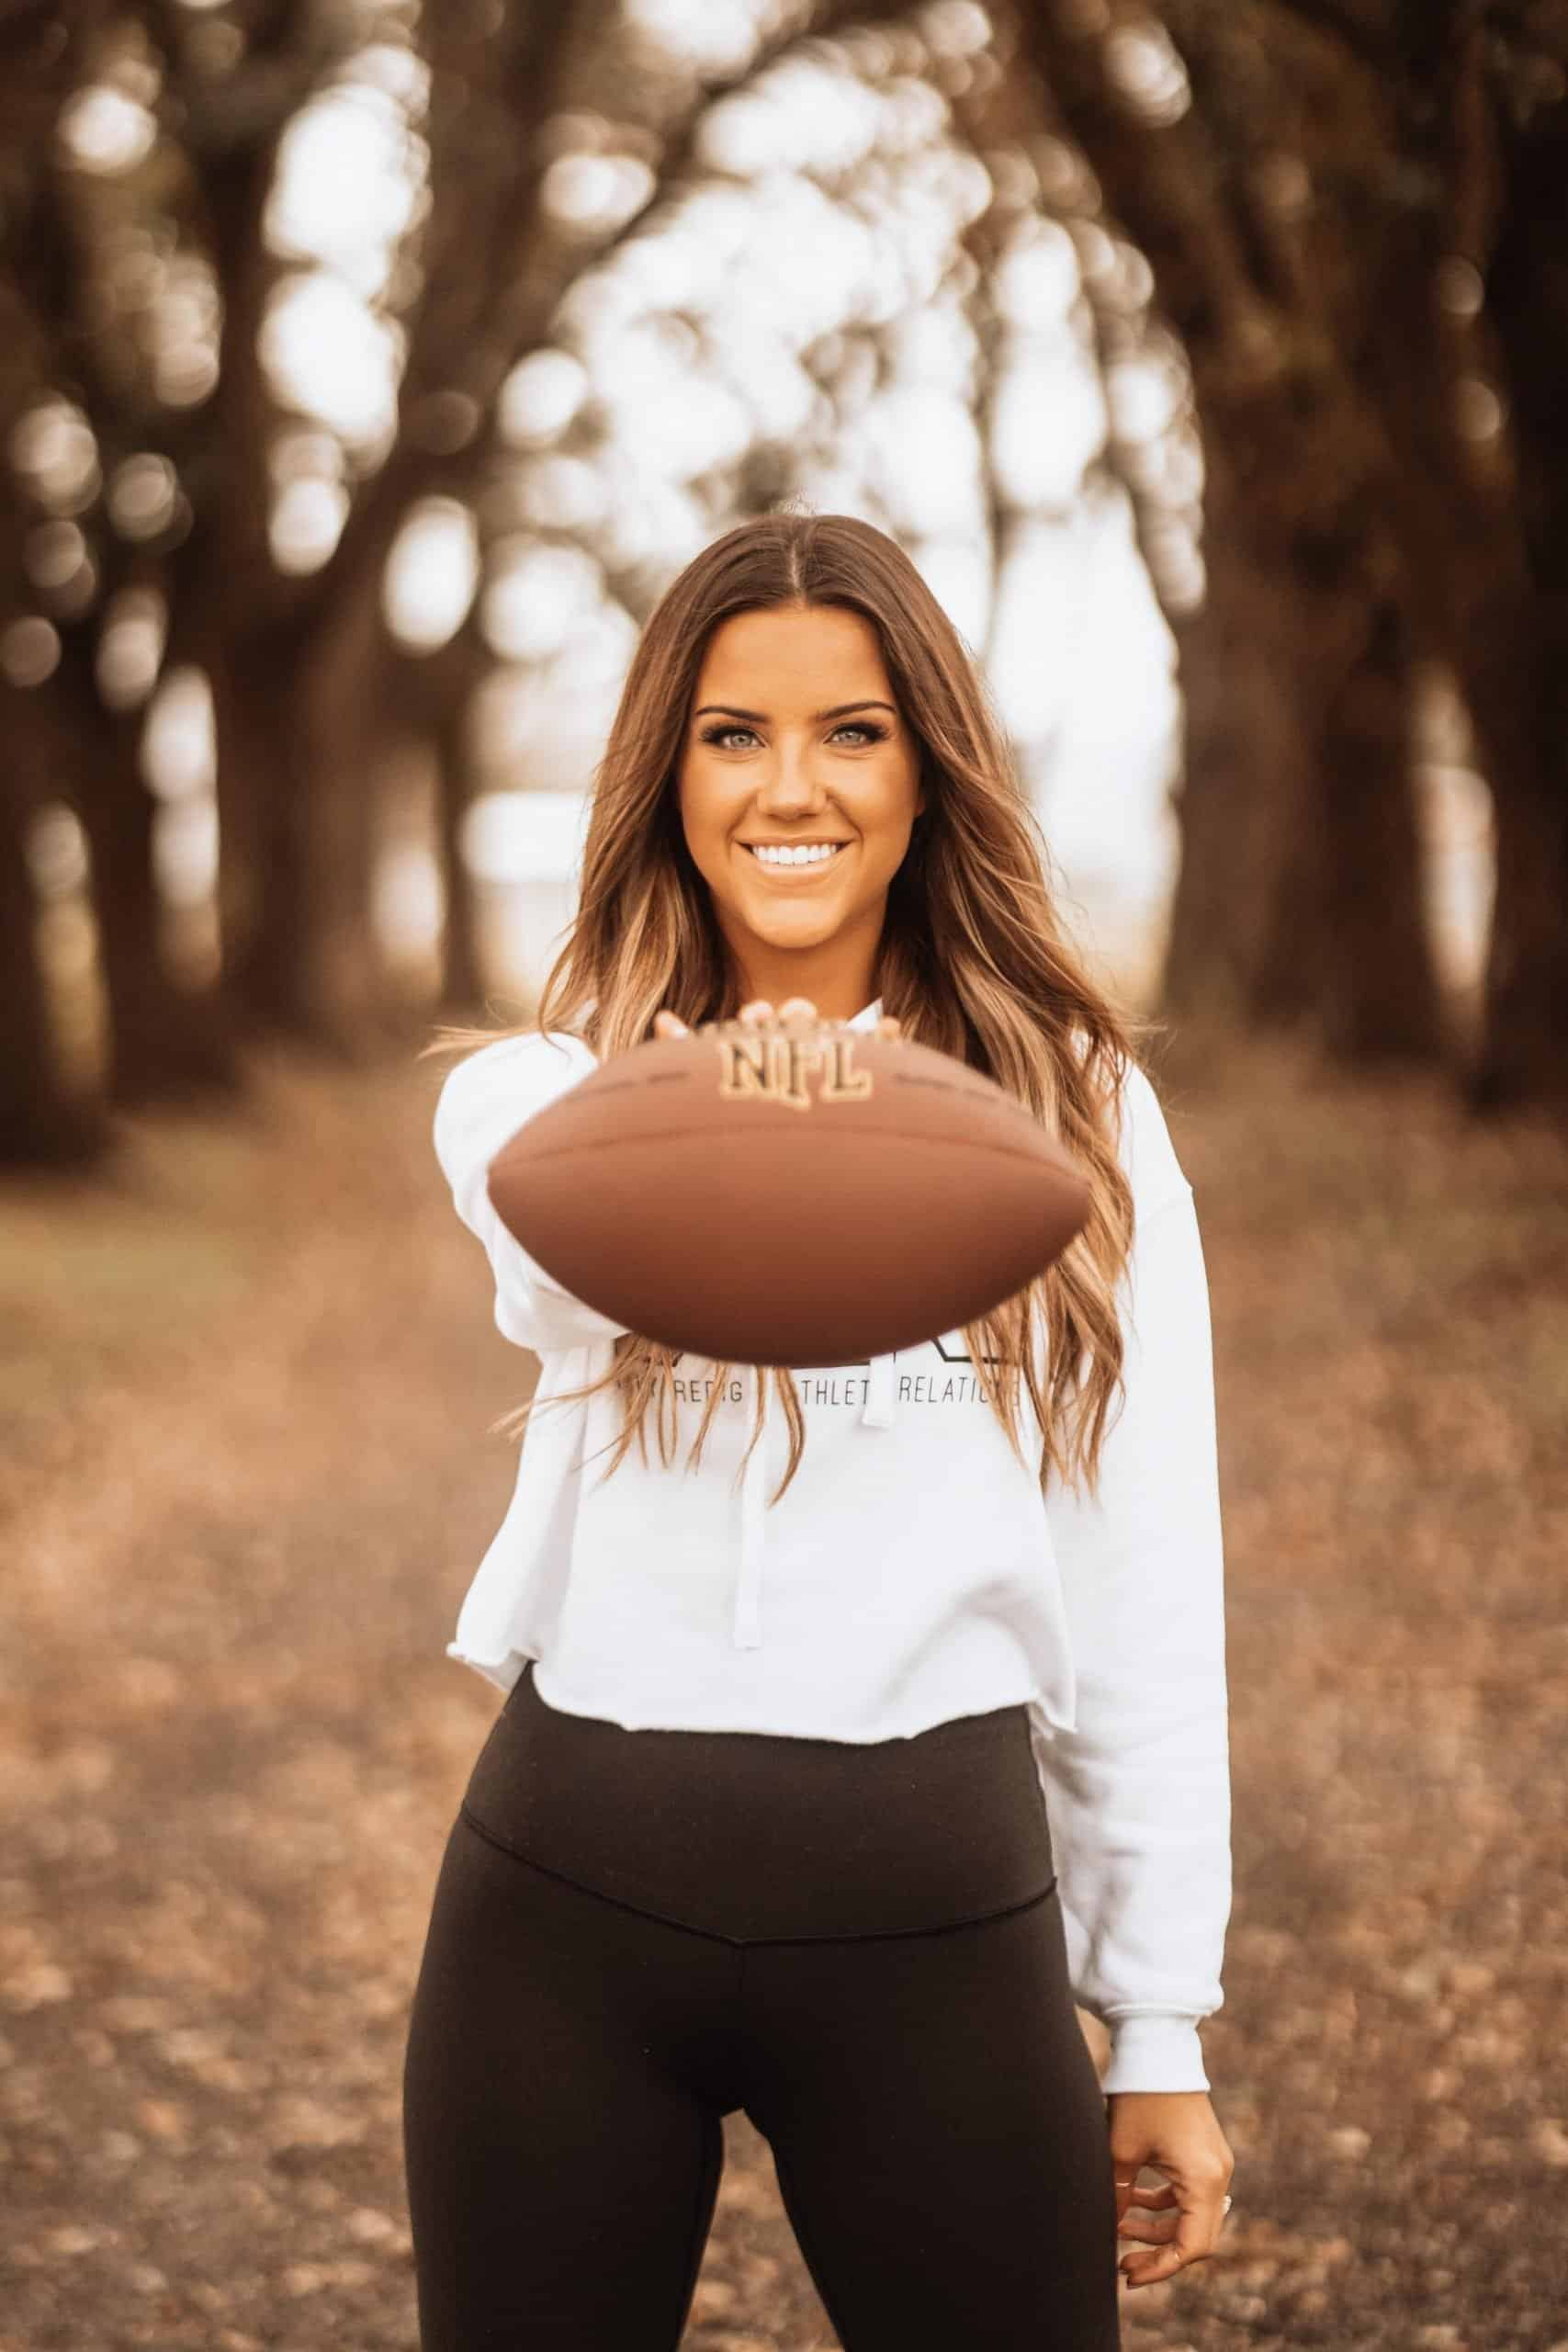 Women in Sports: Meet Ally Redig, professional in athlete relations